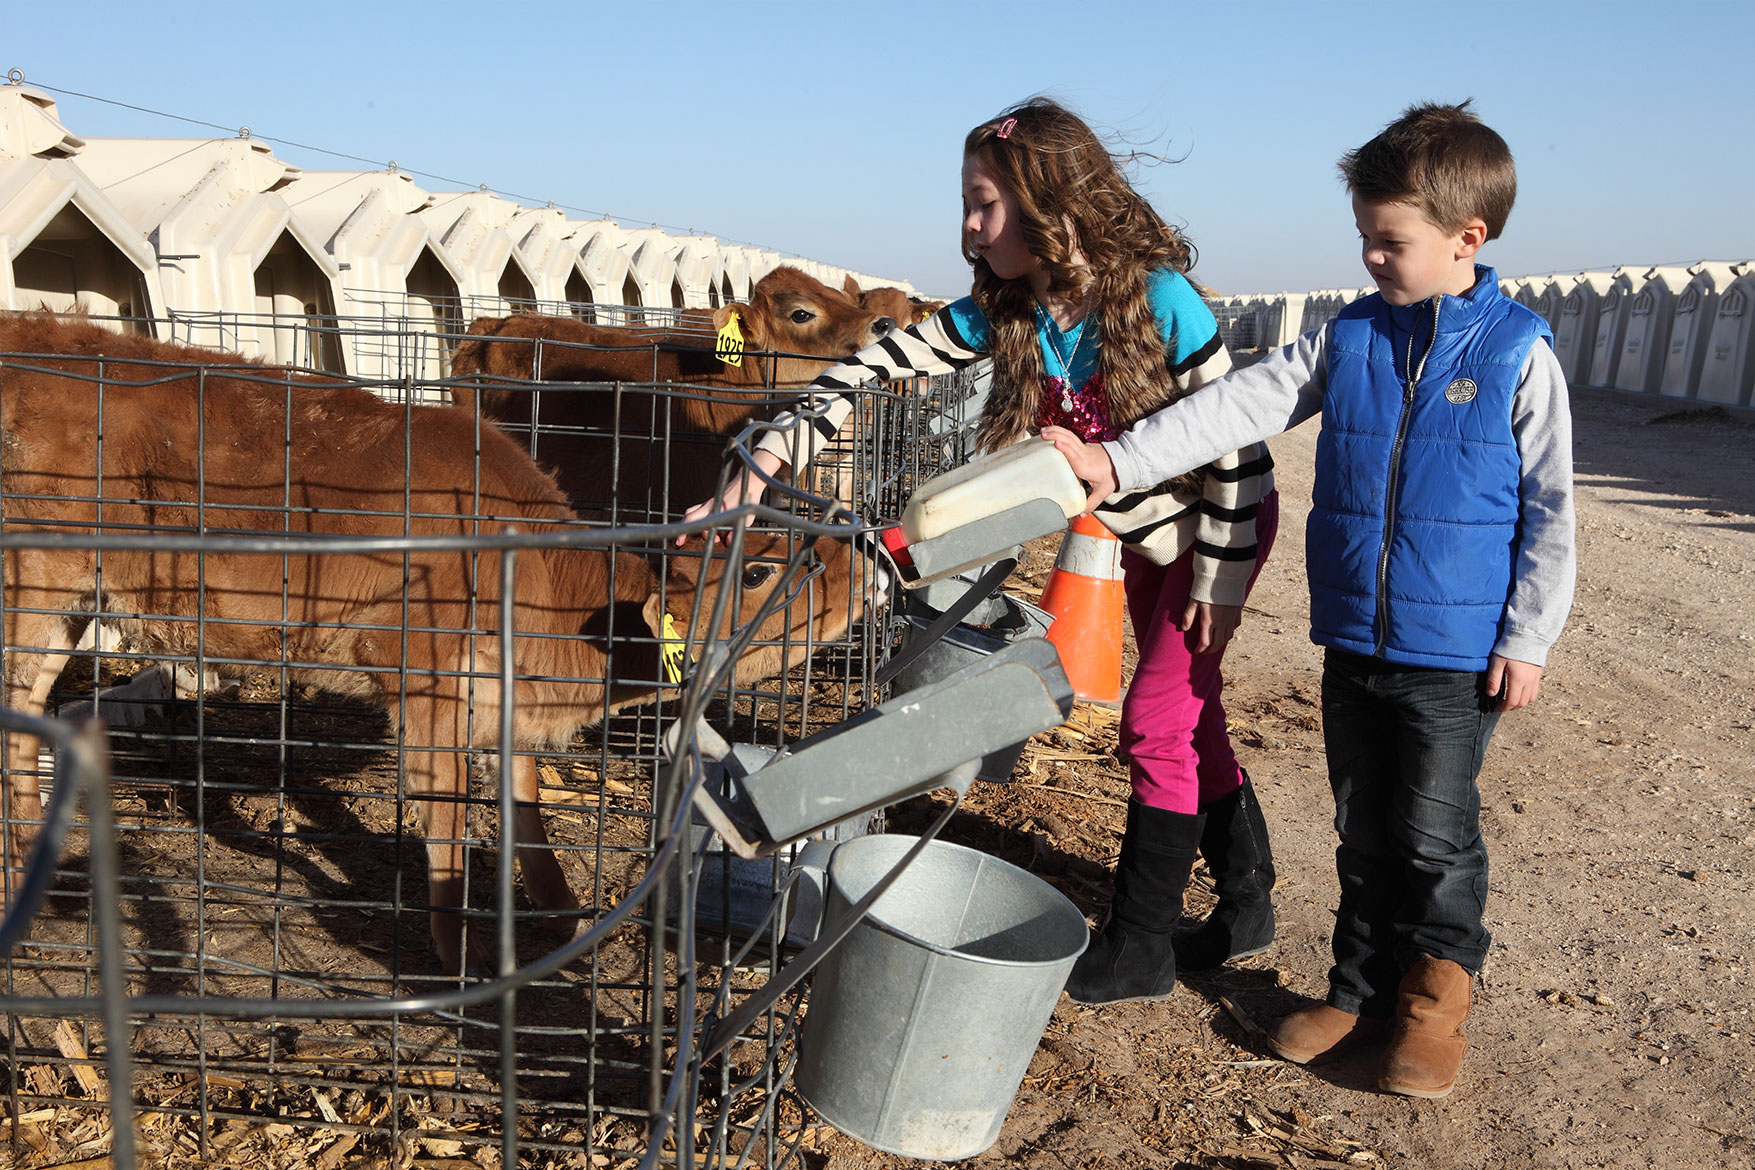 The Ballou kids help give bottles to the dairy's calves.